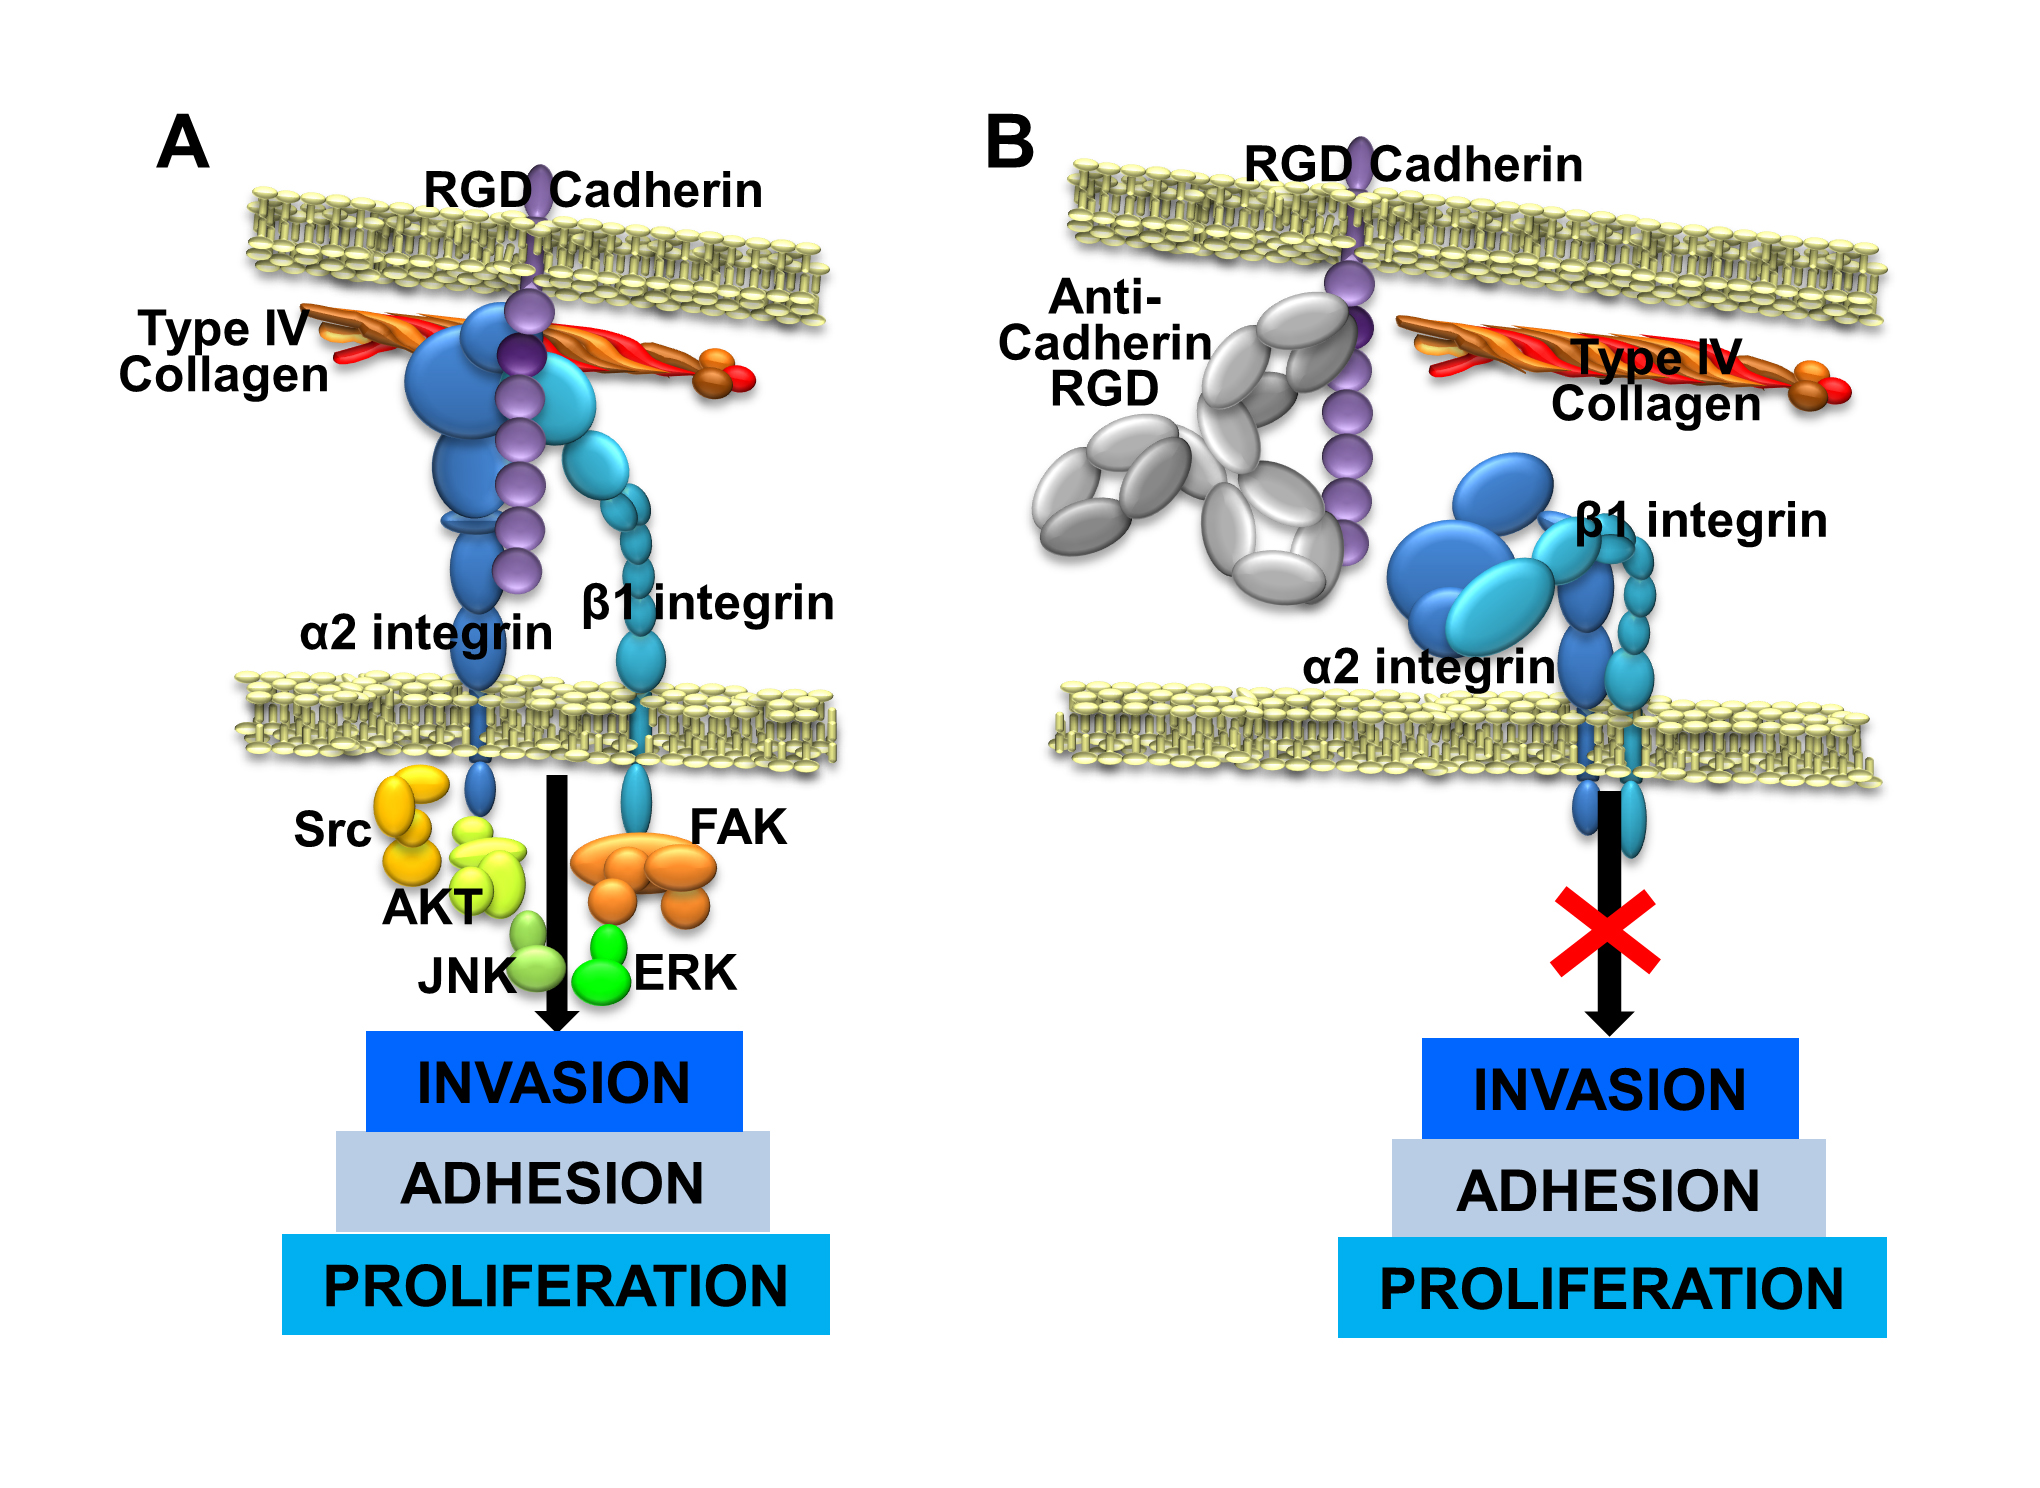 Action mechanism of therapeutic antibodies against RGD cadherin